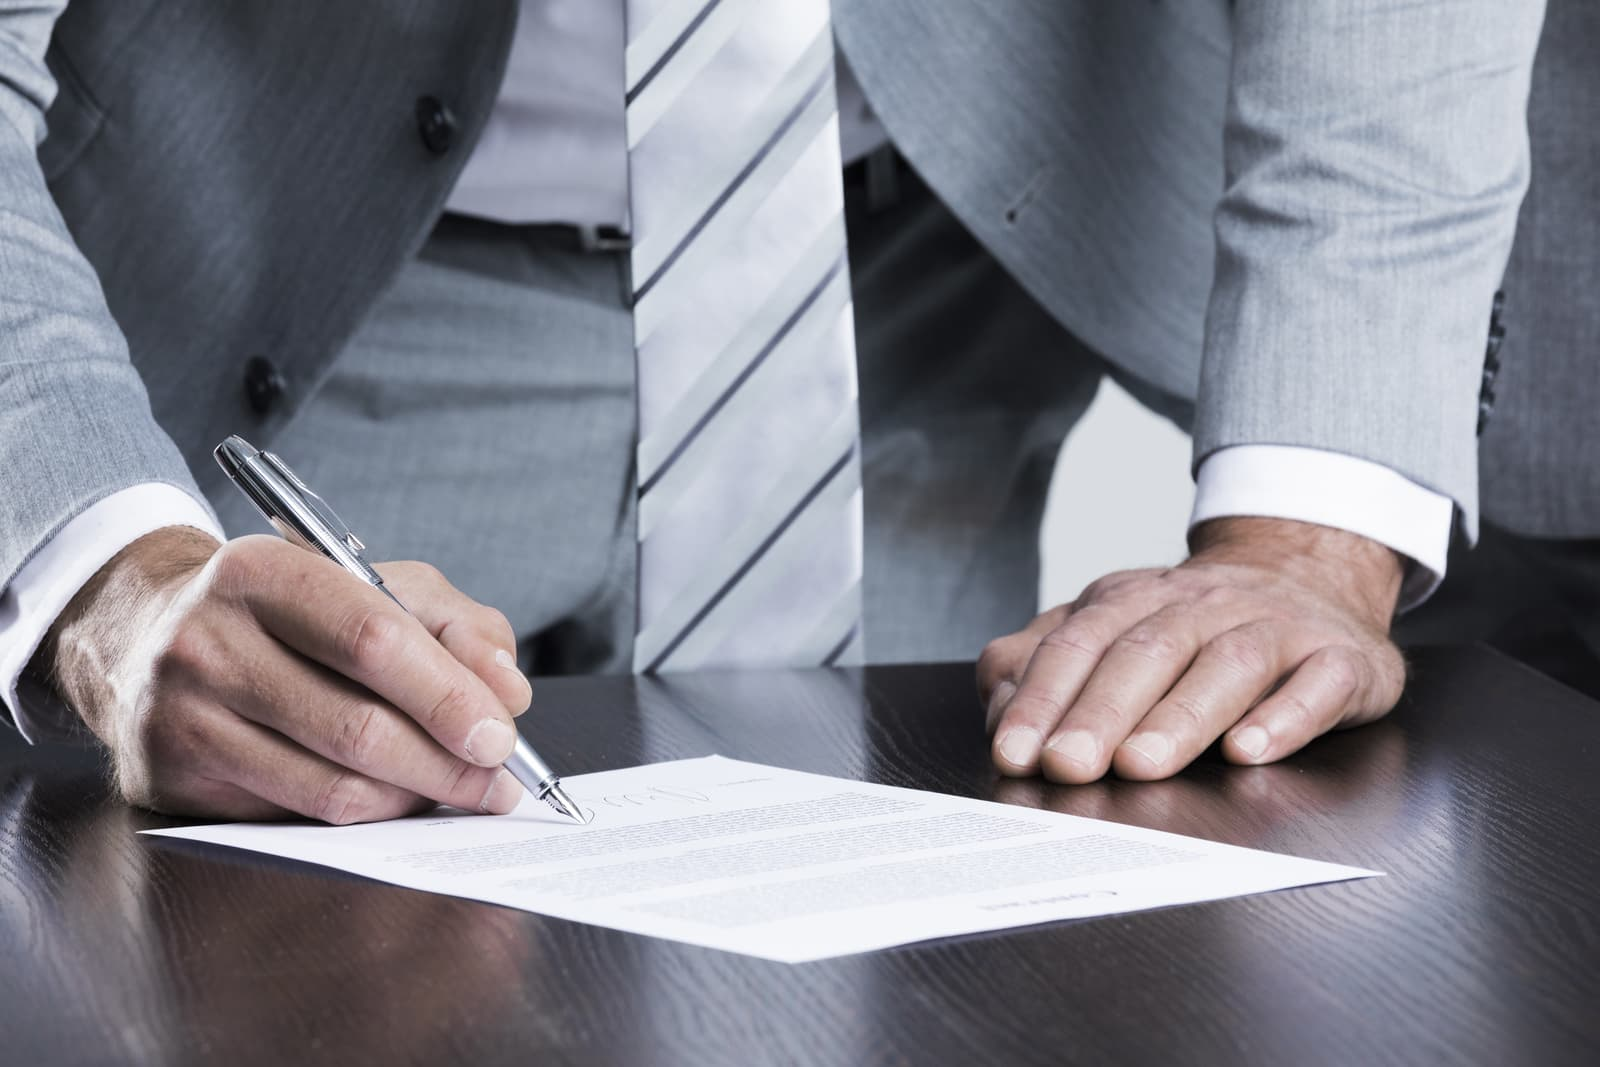 a man signing a document while standing